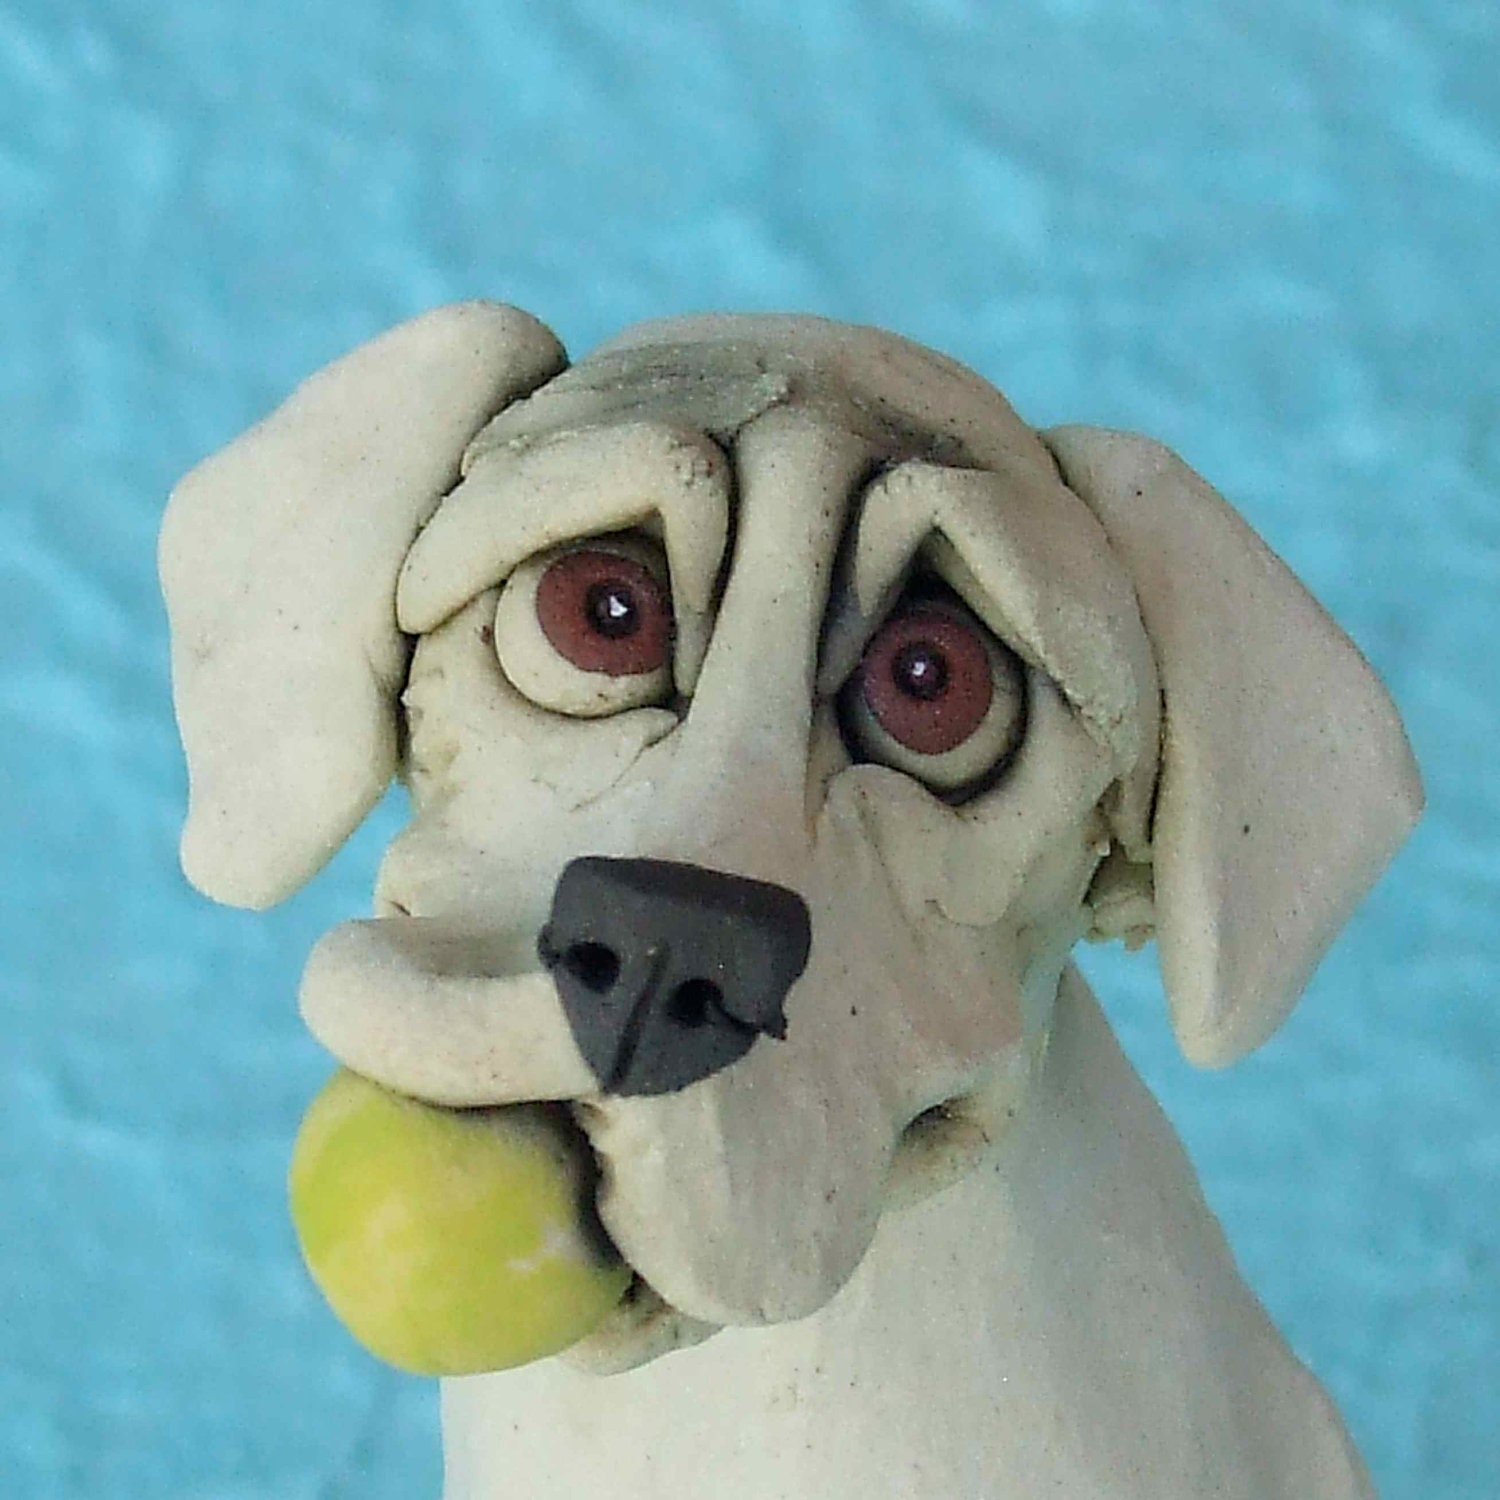 Labrador Retriever Dog Holding Tennis Ball Ceramic Sculpture